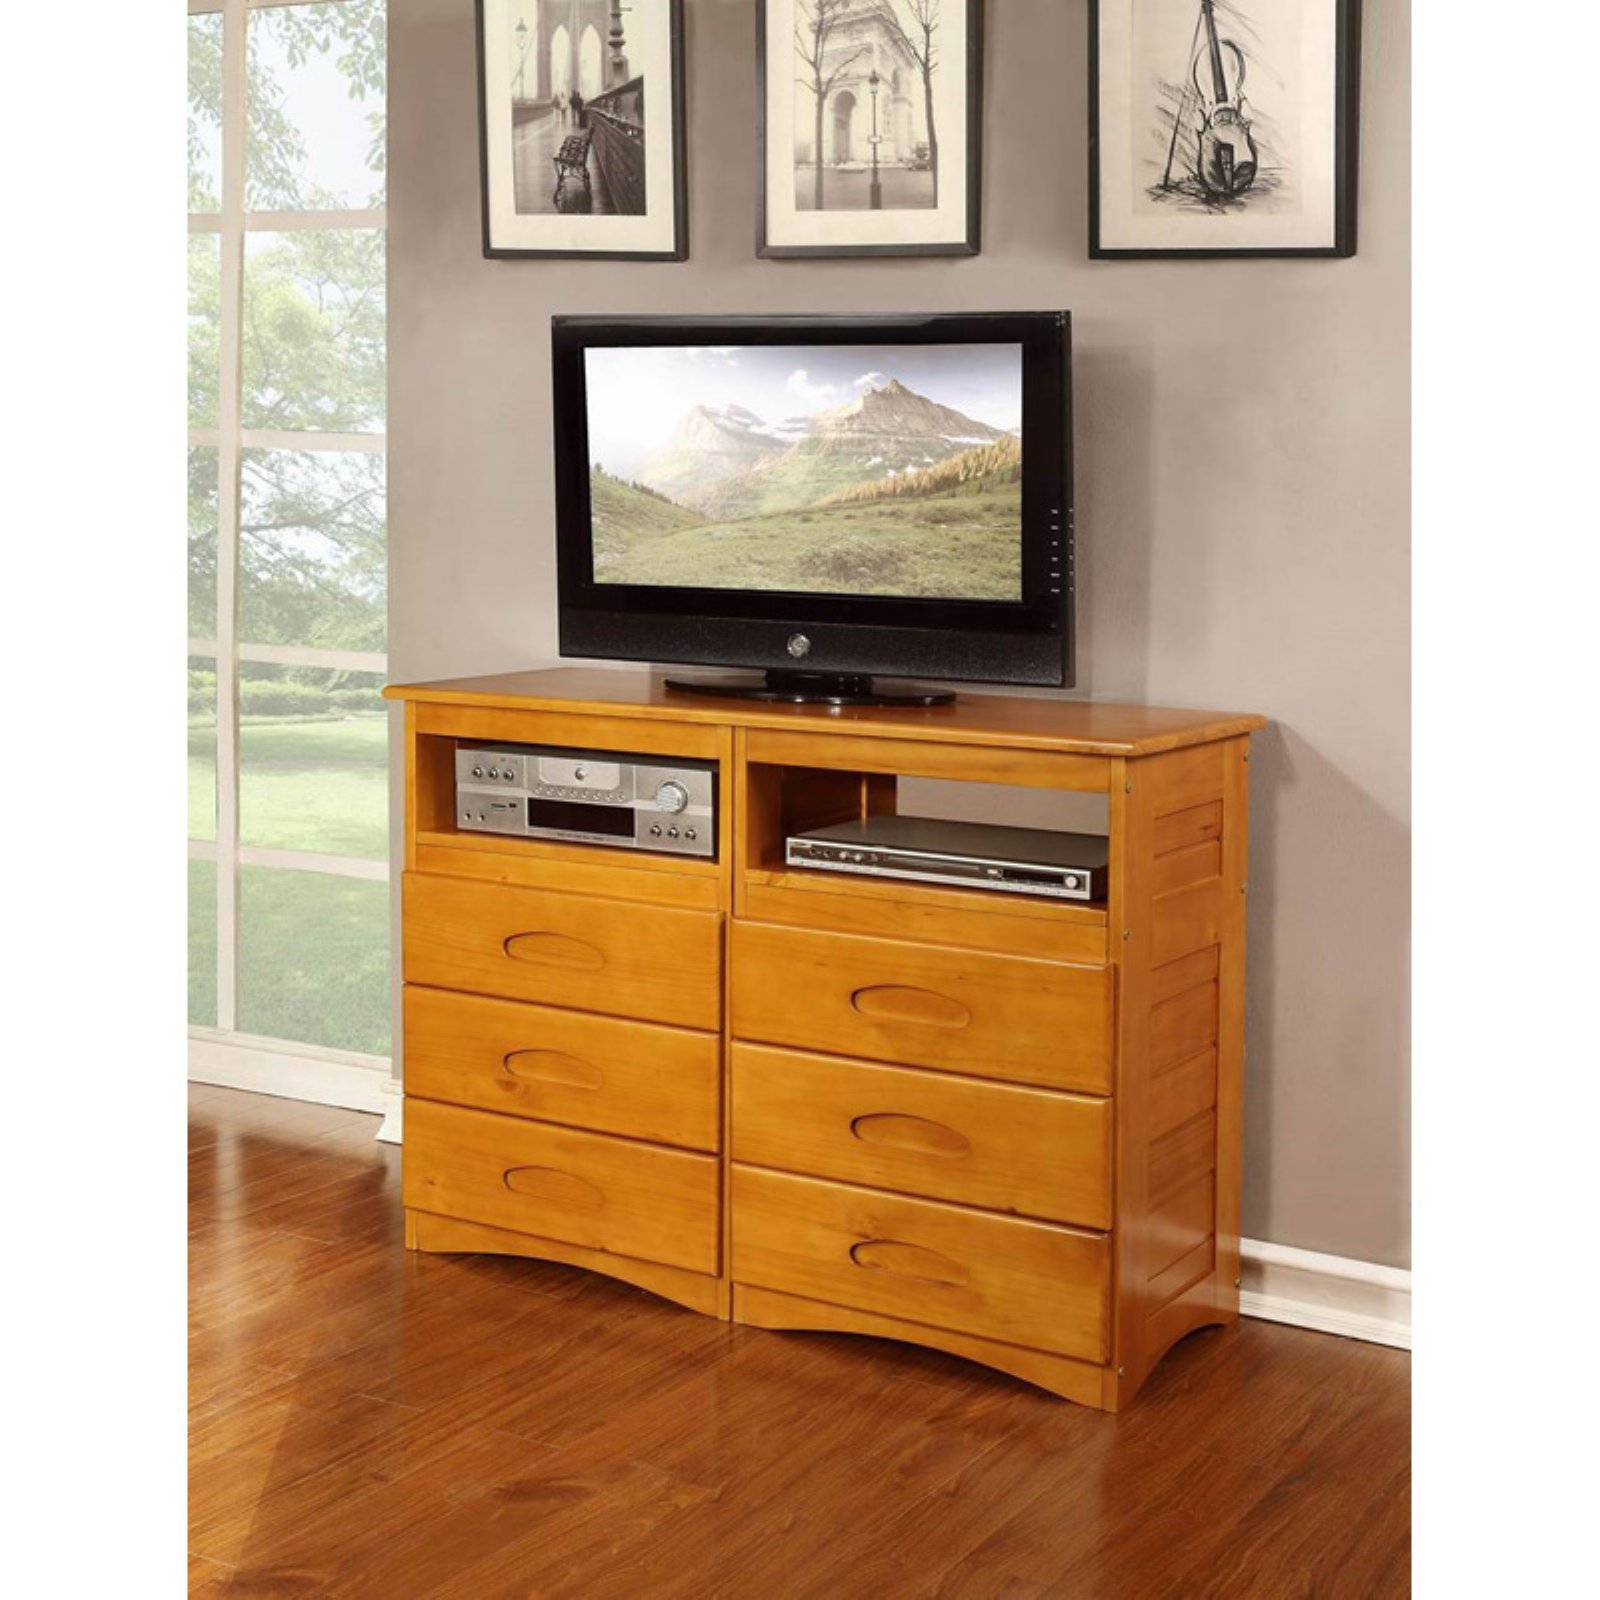 American Furniture Classics Model 2171, Solid Pine Entertainment Dresser with Six Drawers and Two Component Areas in Honey